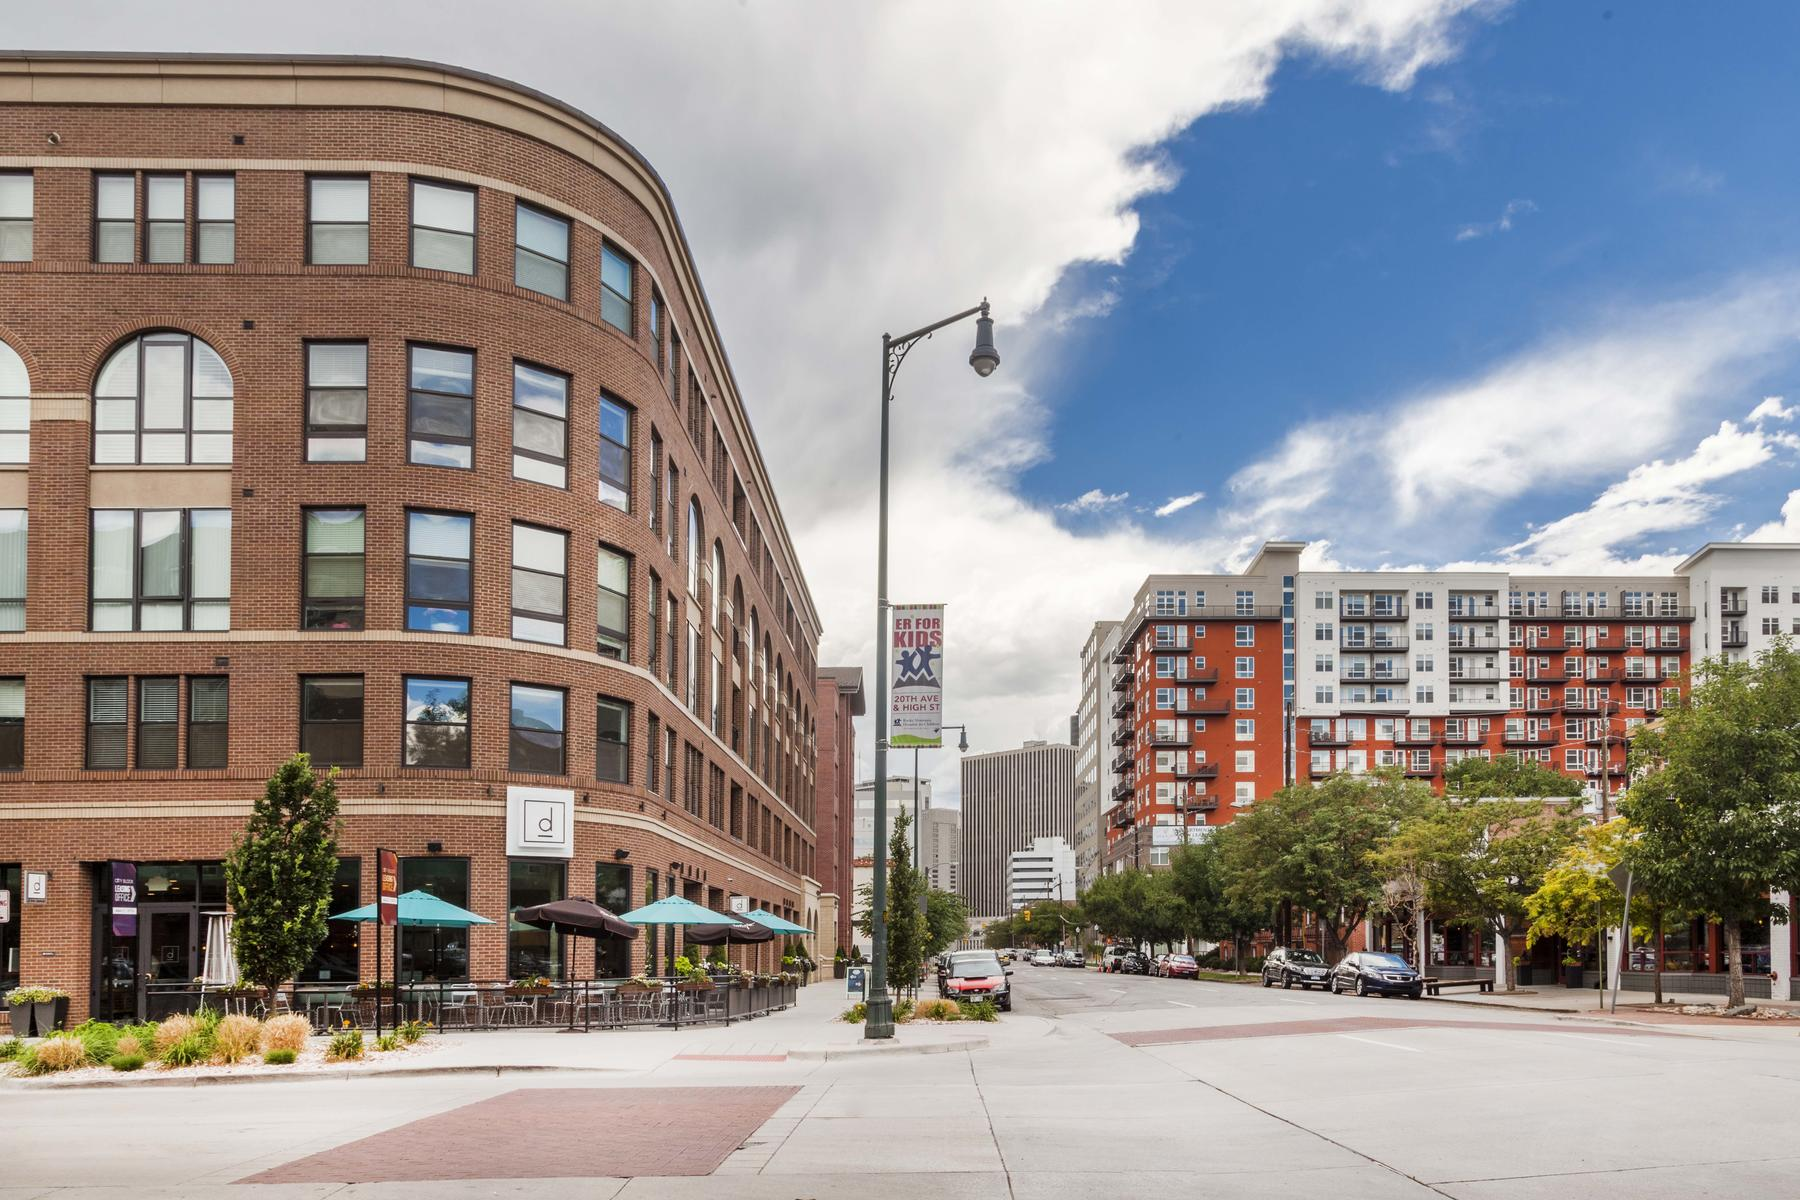 Additional photo for property listing at New Townhome With The best City Lifestyle and Location Available! 2200 Tremont Place #9 Denver, Colorado 80205 United States